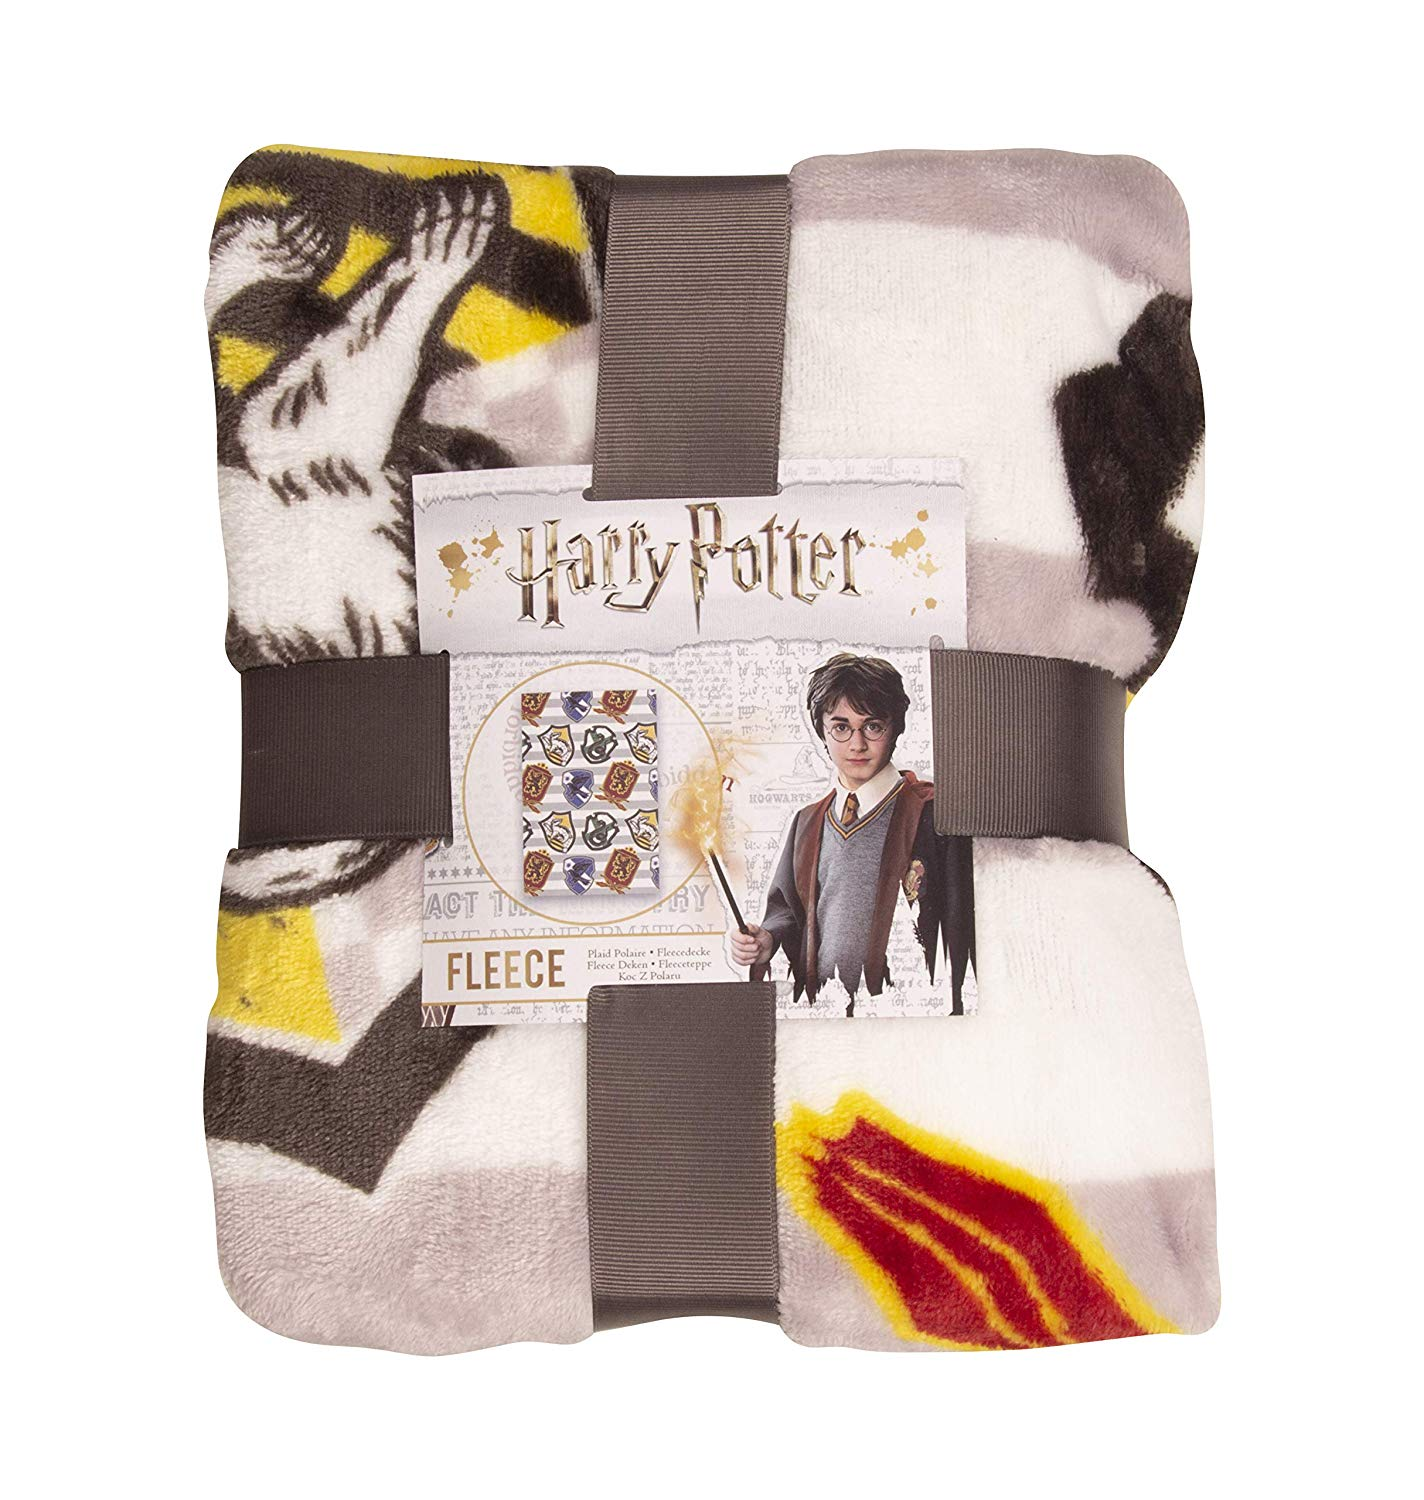 Harry Potter House Stripy Grey & White Rotary Fleece Blanket Throw